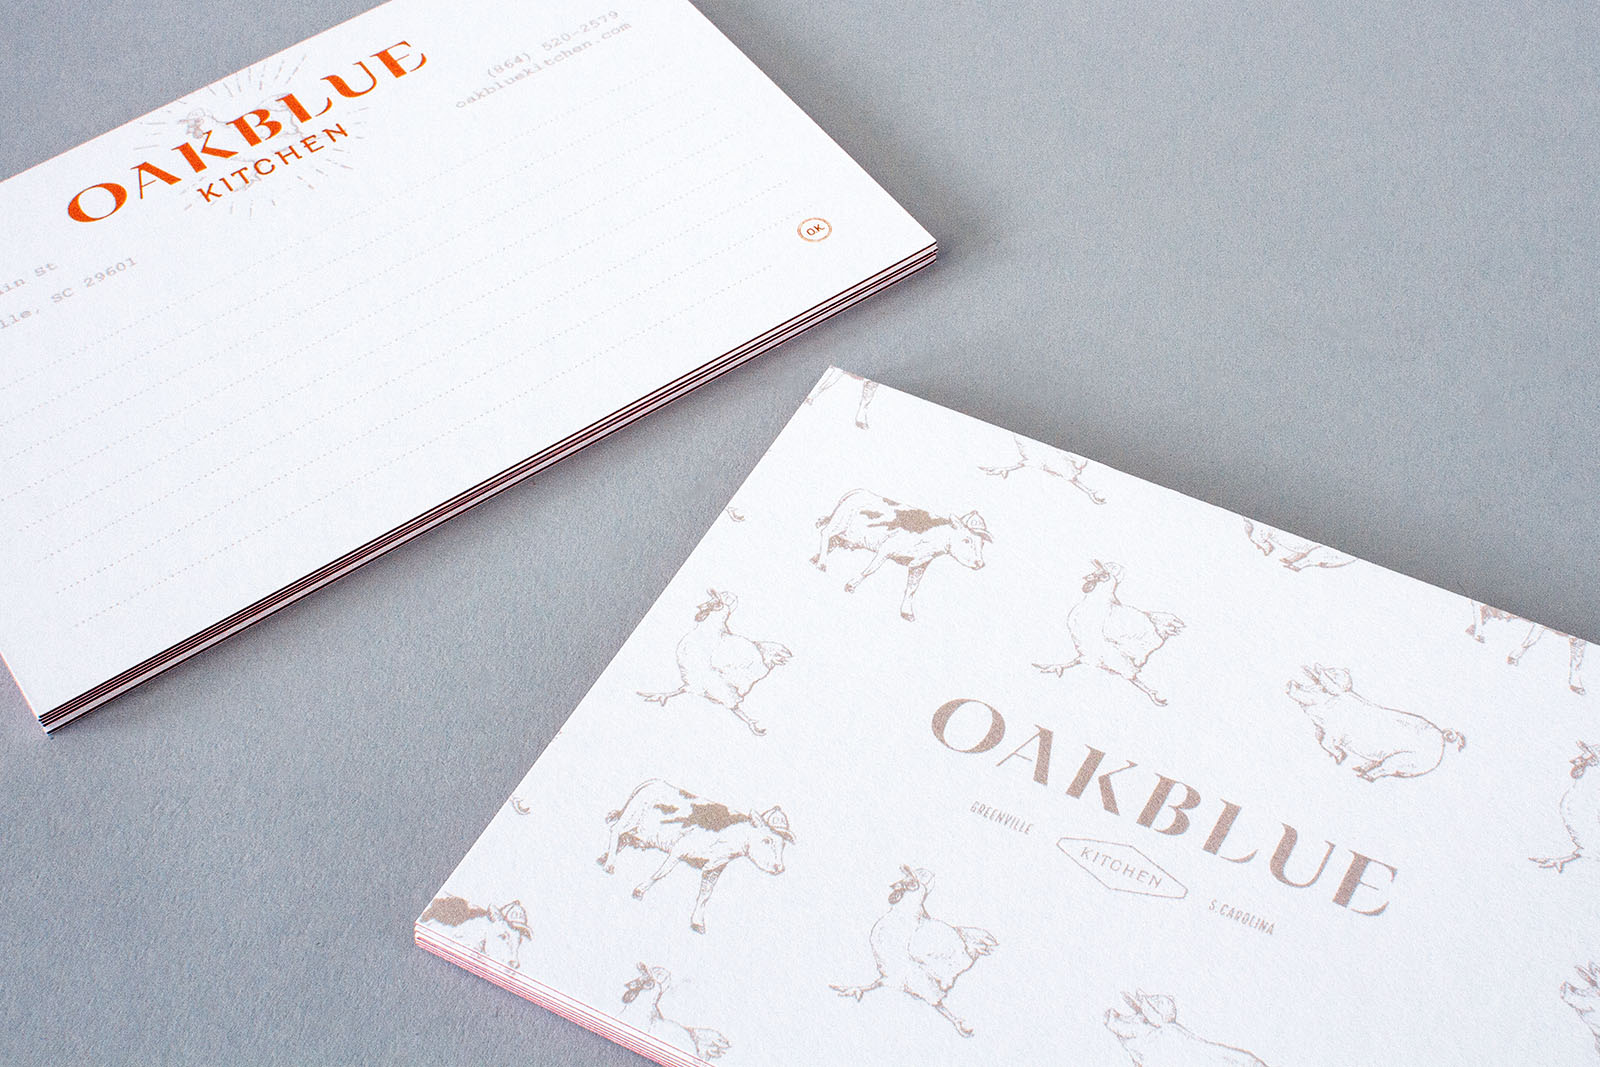 Stack of Oakblue Kitchen restaurant notecards, part of the brand collateral and stationery, with red side seam and hand drawn illustrations of cow, chicken and pig on the back of each card.